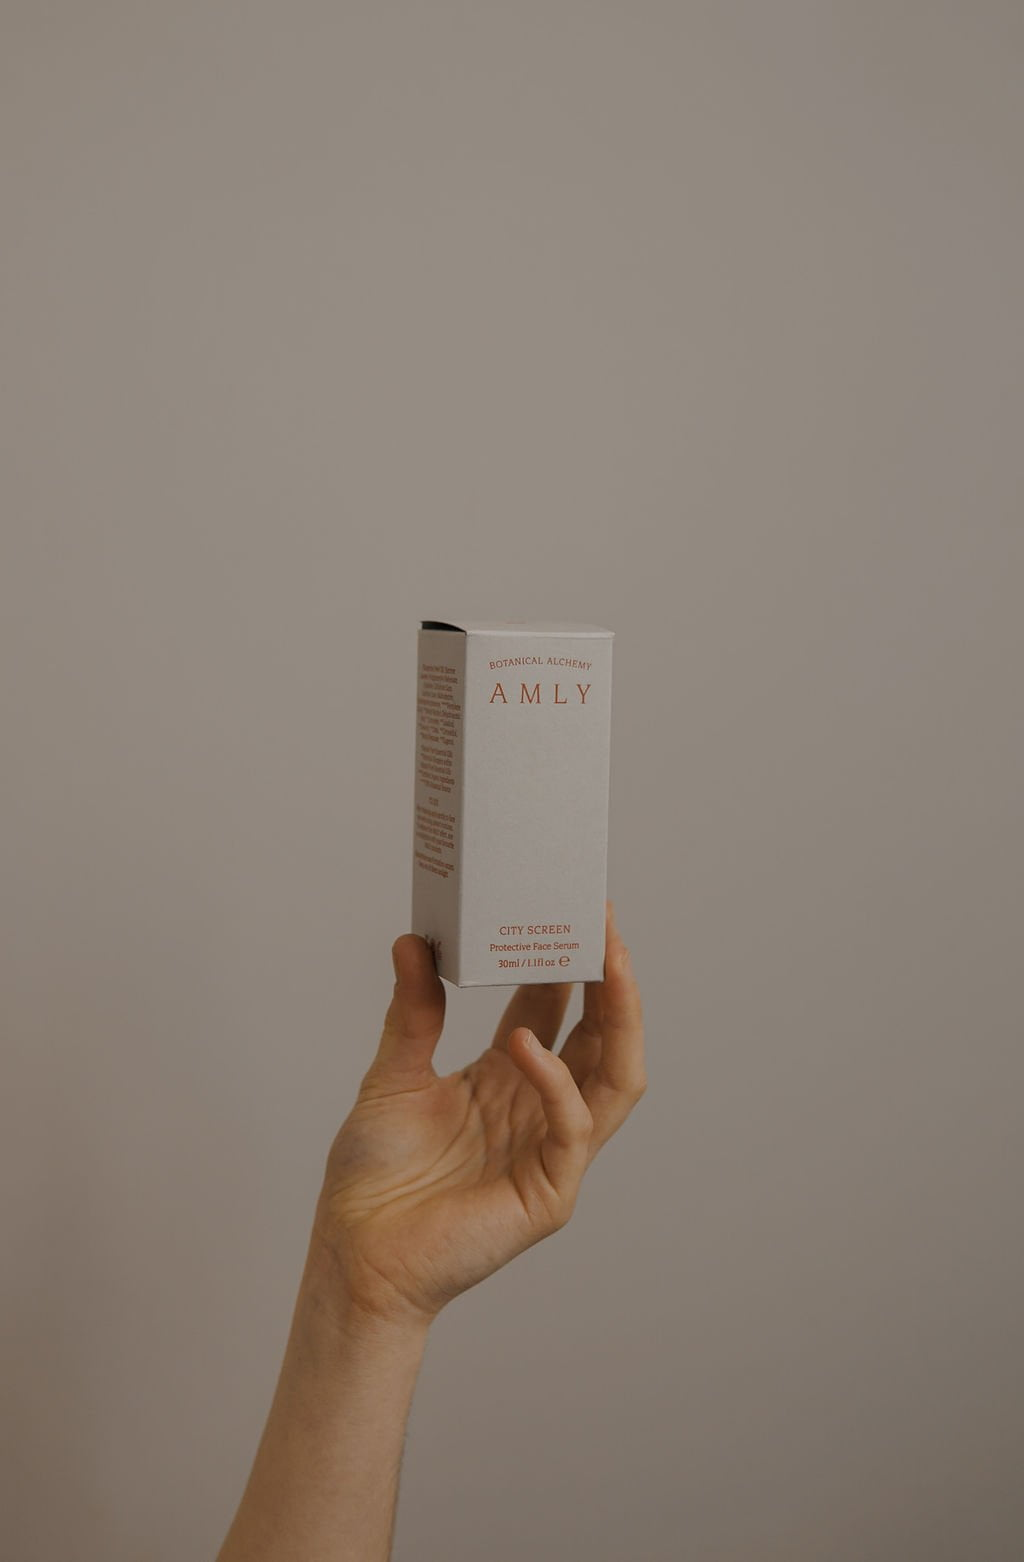 AMLY Botanicals city screen protective face serum box in hand - part of the morning prescription routine